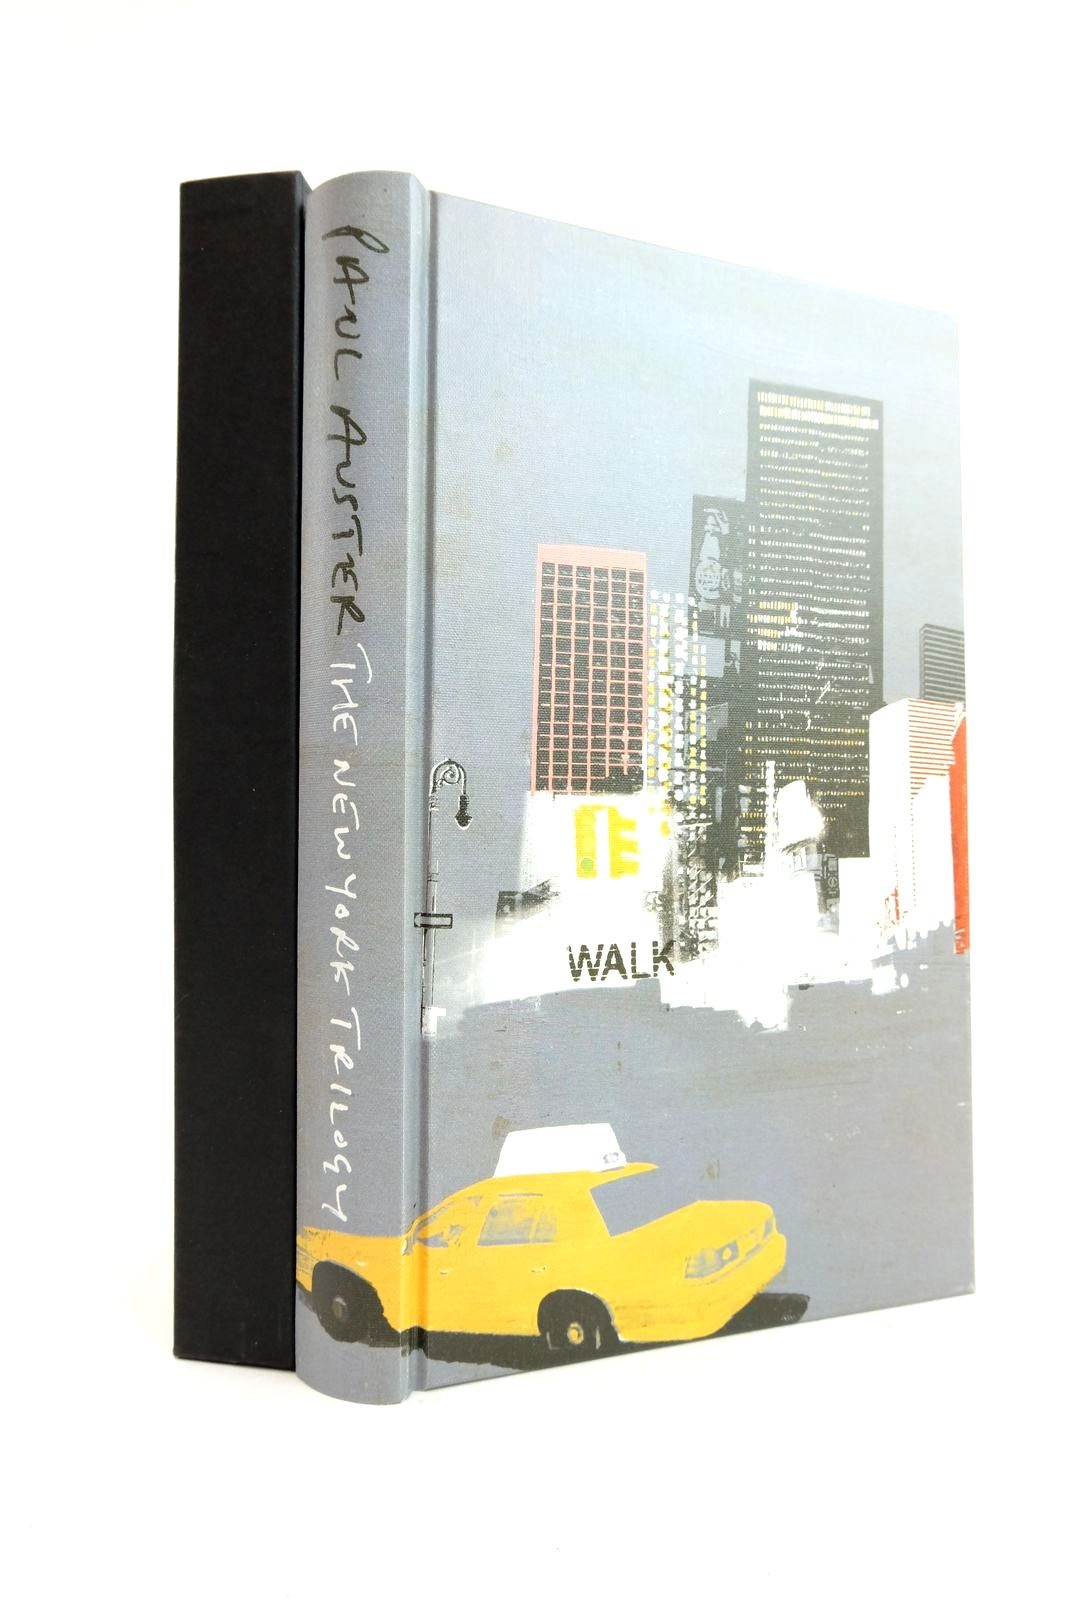 Photo of THE NEW YORK TRILOGY written by Auster, Paul illustrated by Burns, Tom published by Folio Society (STOCK CODE: 2134556)  for sale by Stella & Rose's Books